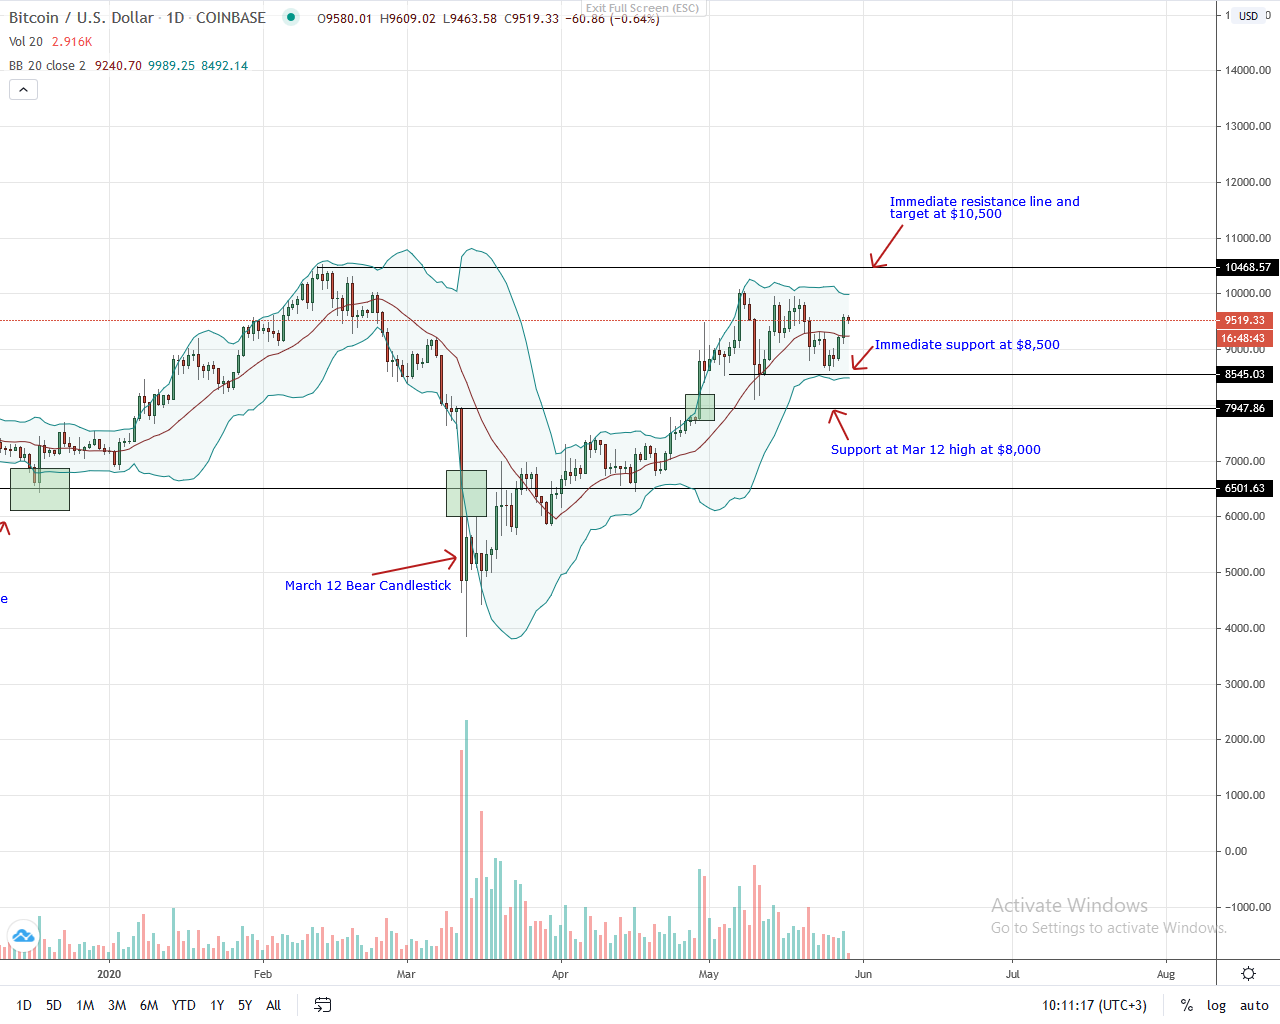 Bitcoin Daily Chart for May 29